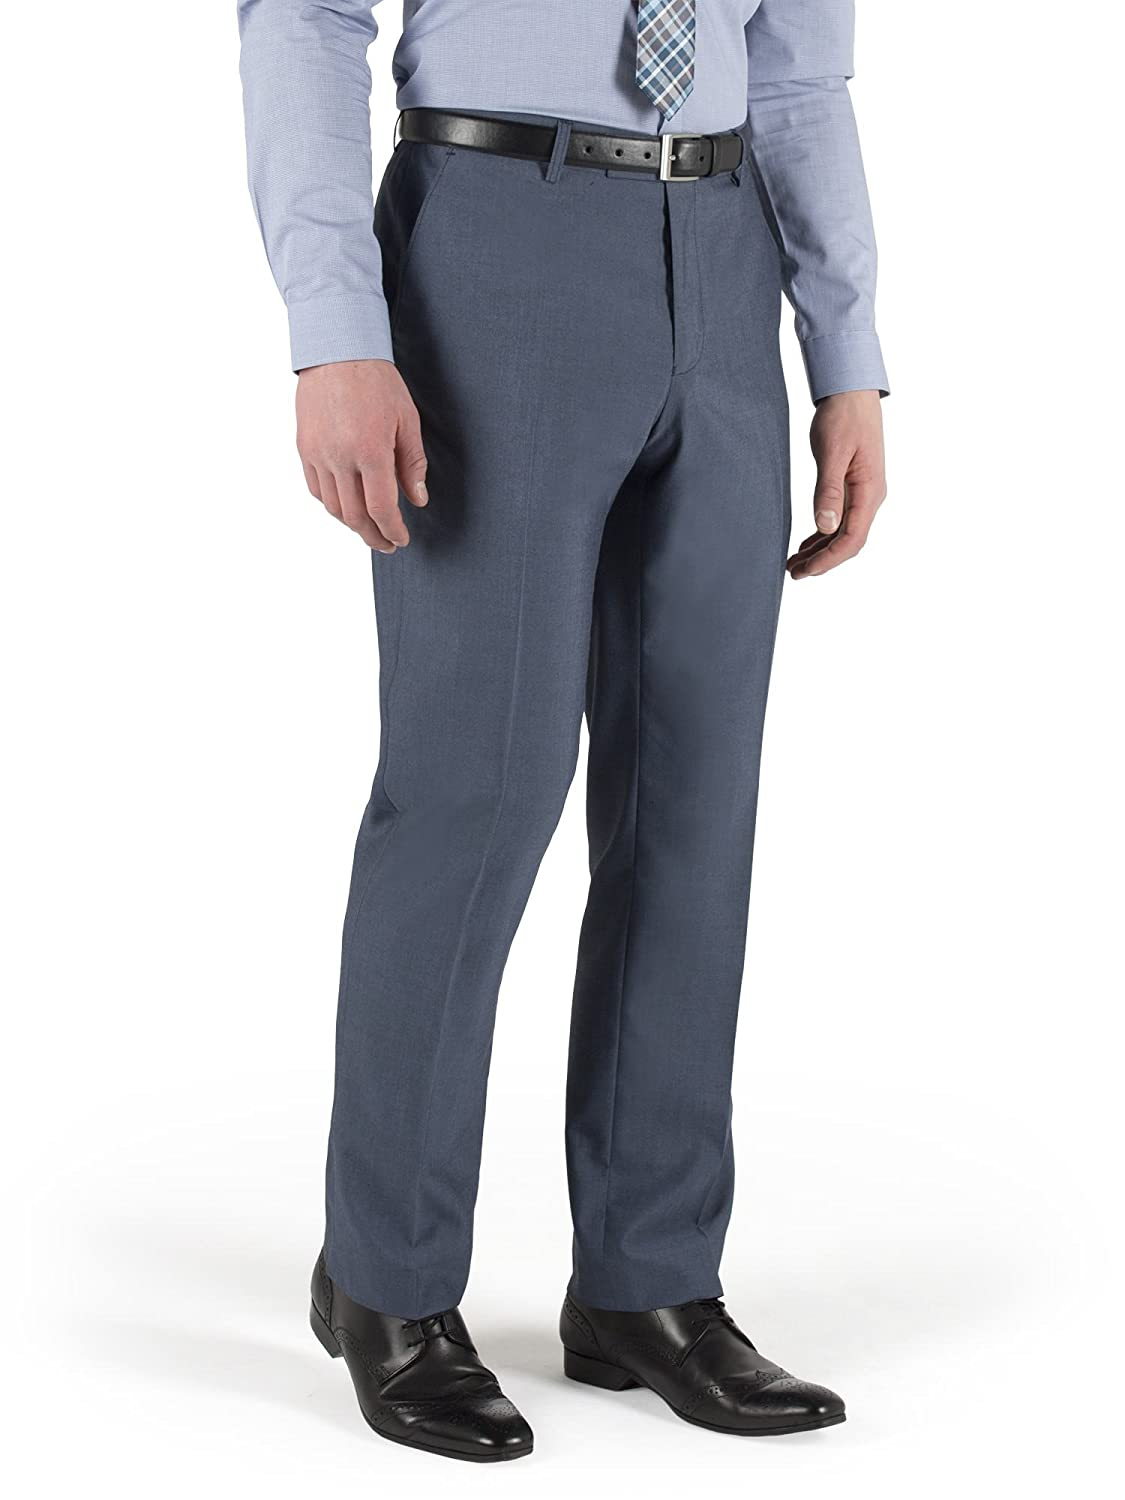 Suit Direct Limehaus Blue Tonic Slim Fit Suit Trouser - LH120710 Single Breasted Slim And Skinny Fit Mixer Trouser